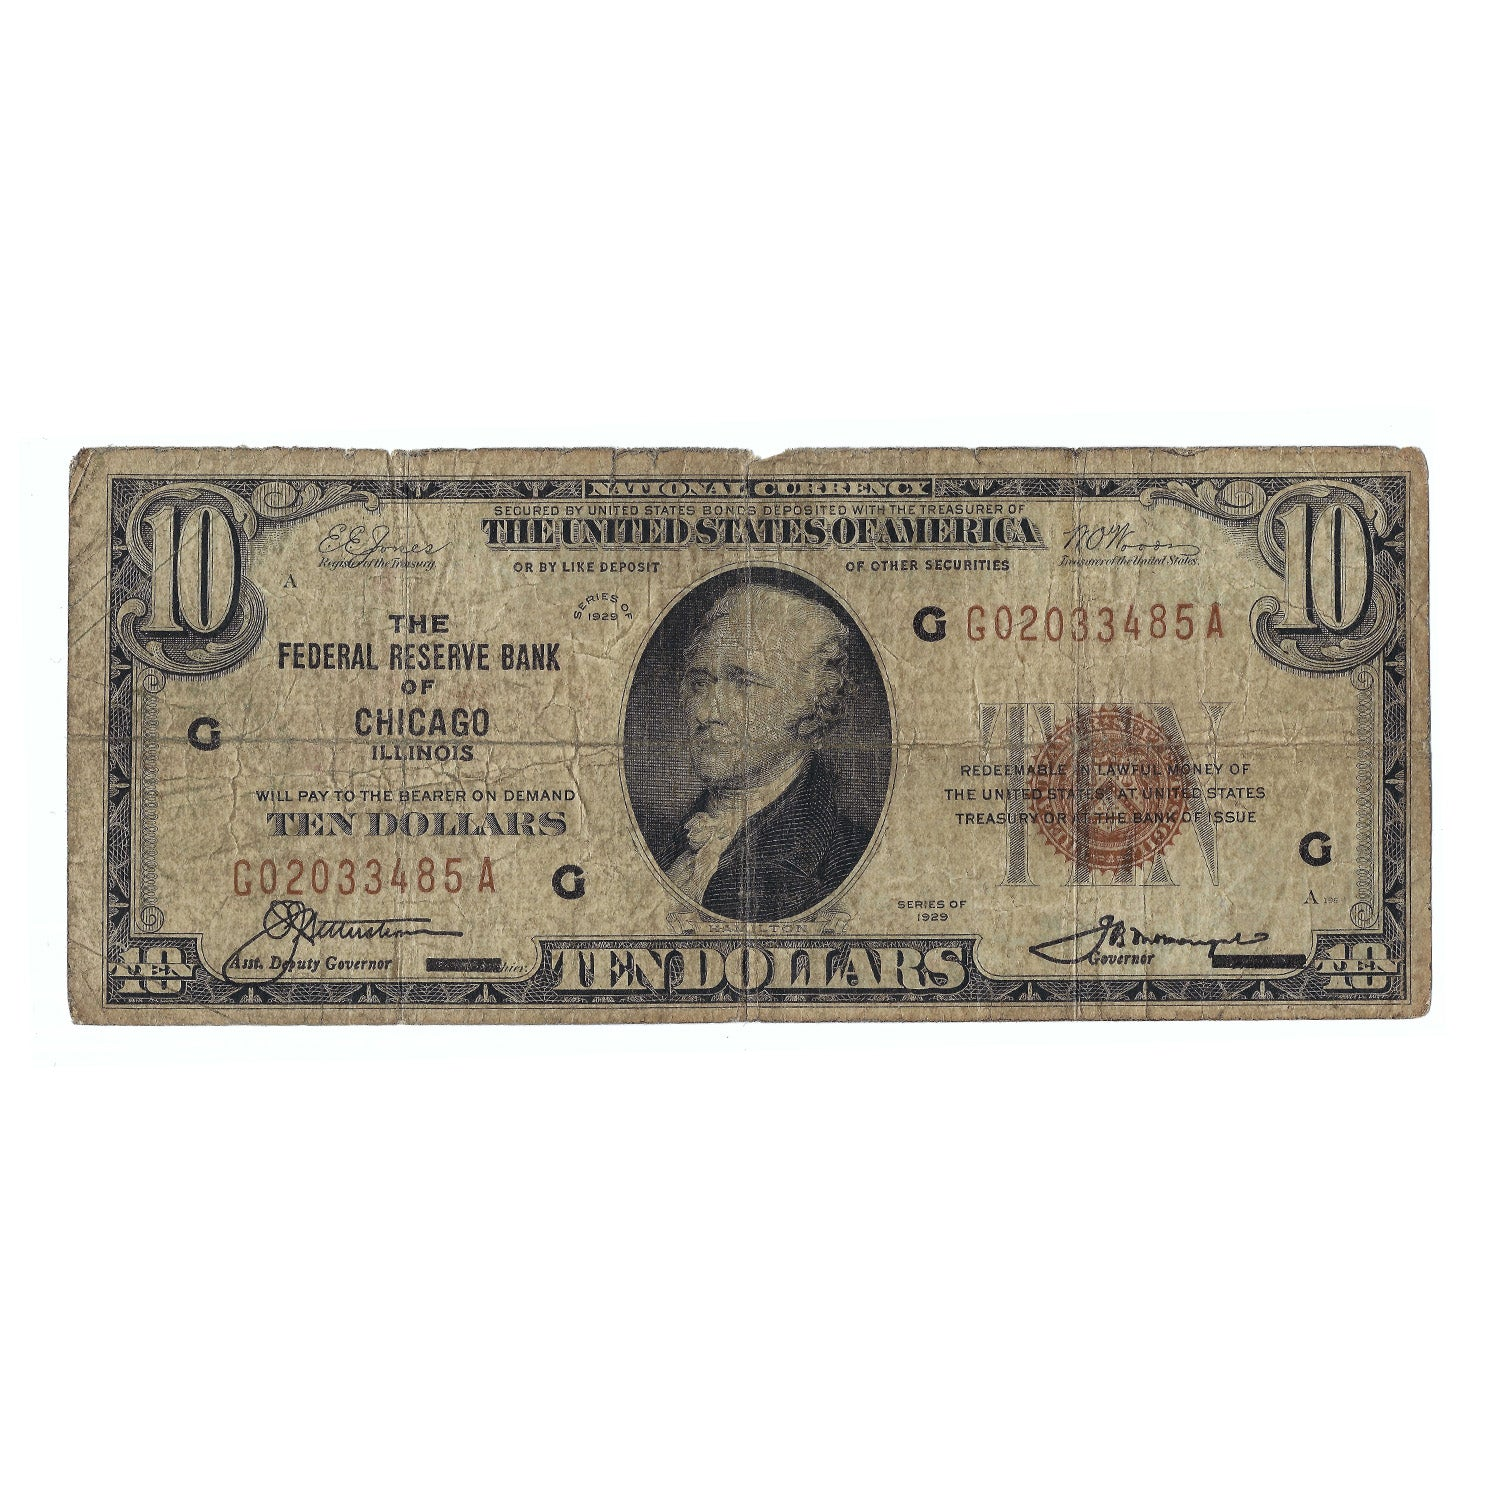 1929 $10 Small Size Federal Reserve Bank Note of Chicago, IL, Circulated